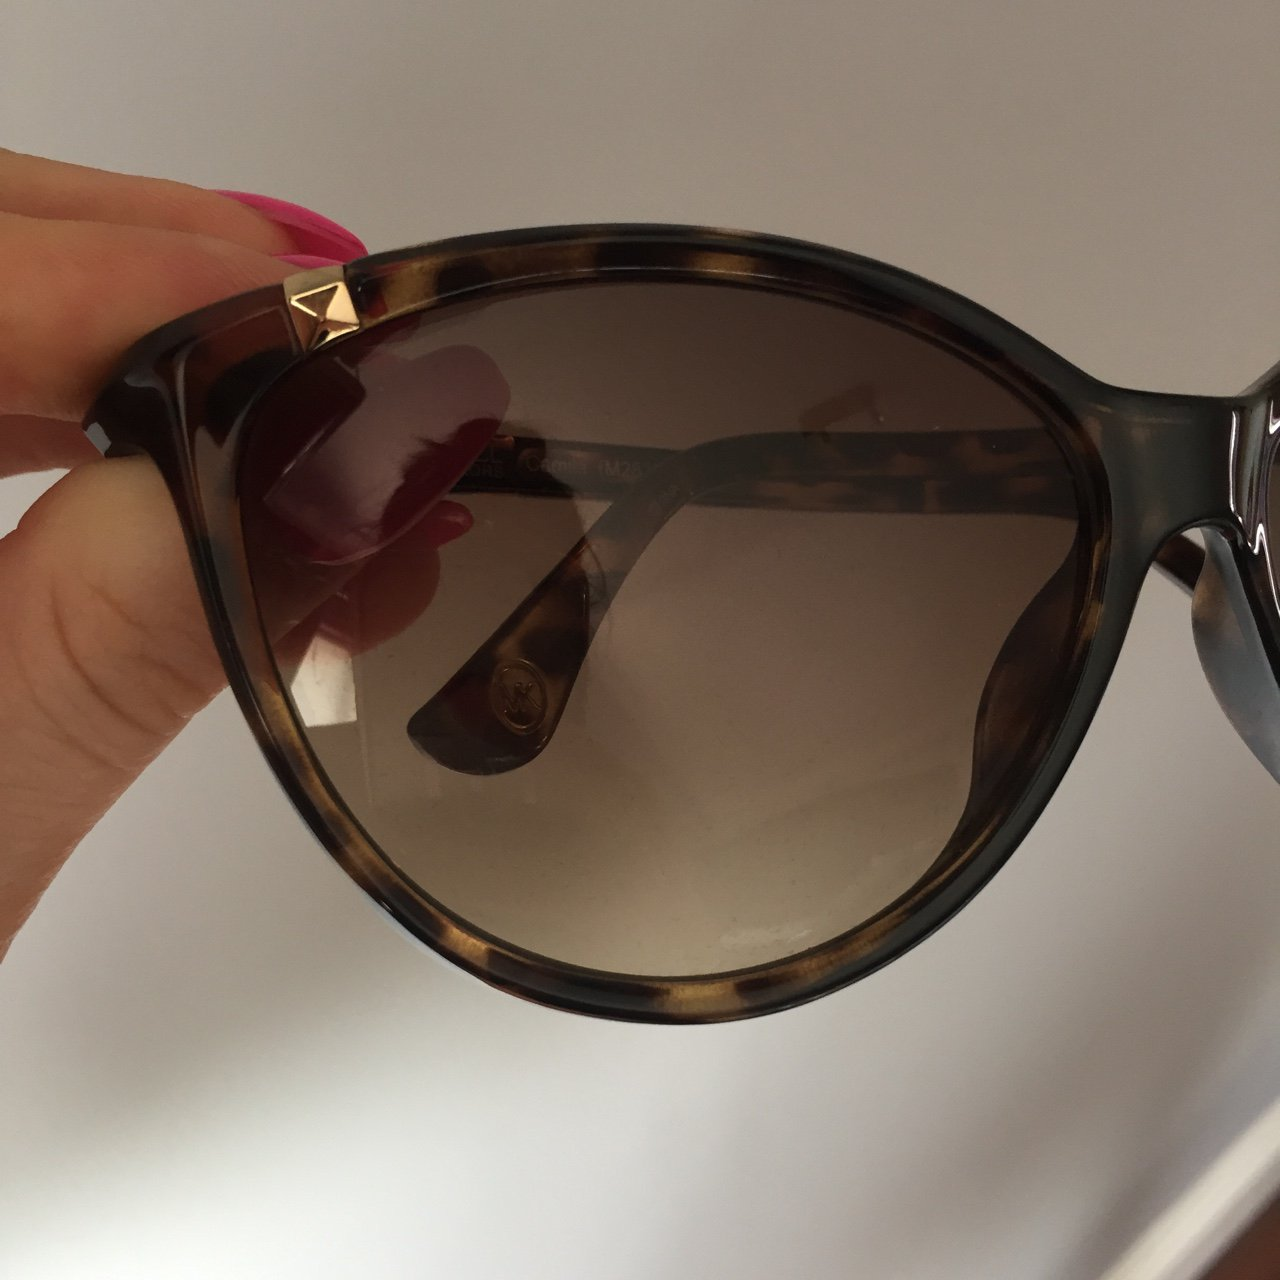 3d63cc9e9ec Genuine MICHEAL KORS sunglasses. Only worn once. Bought in - Depop